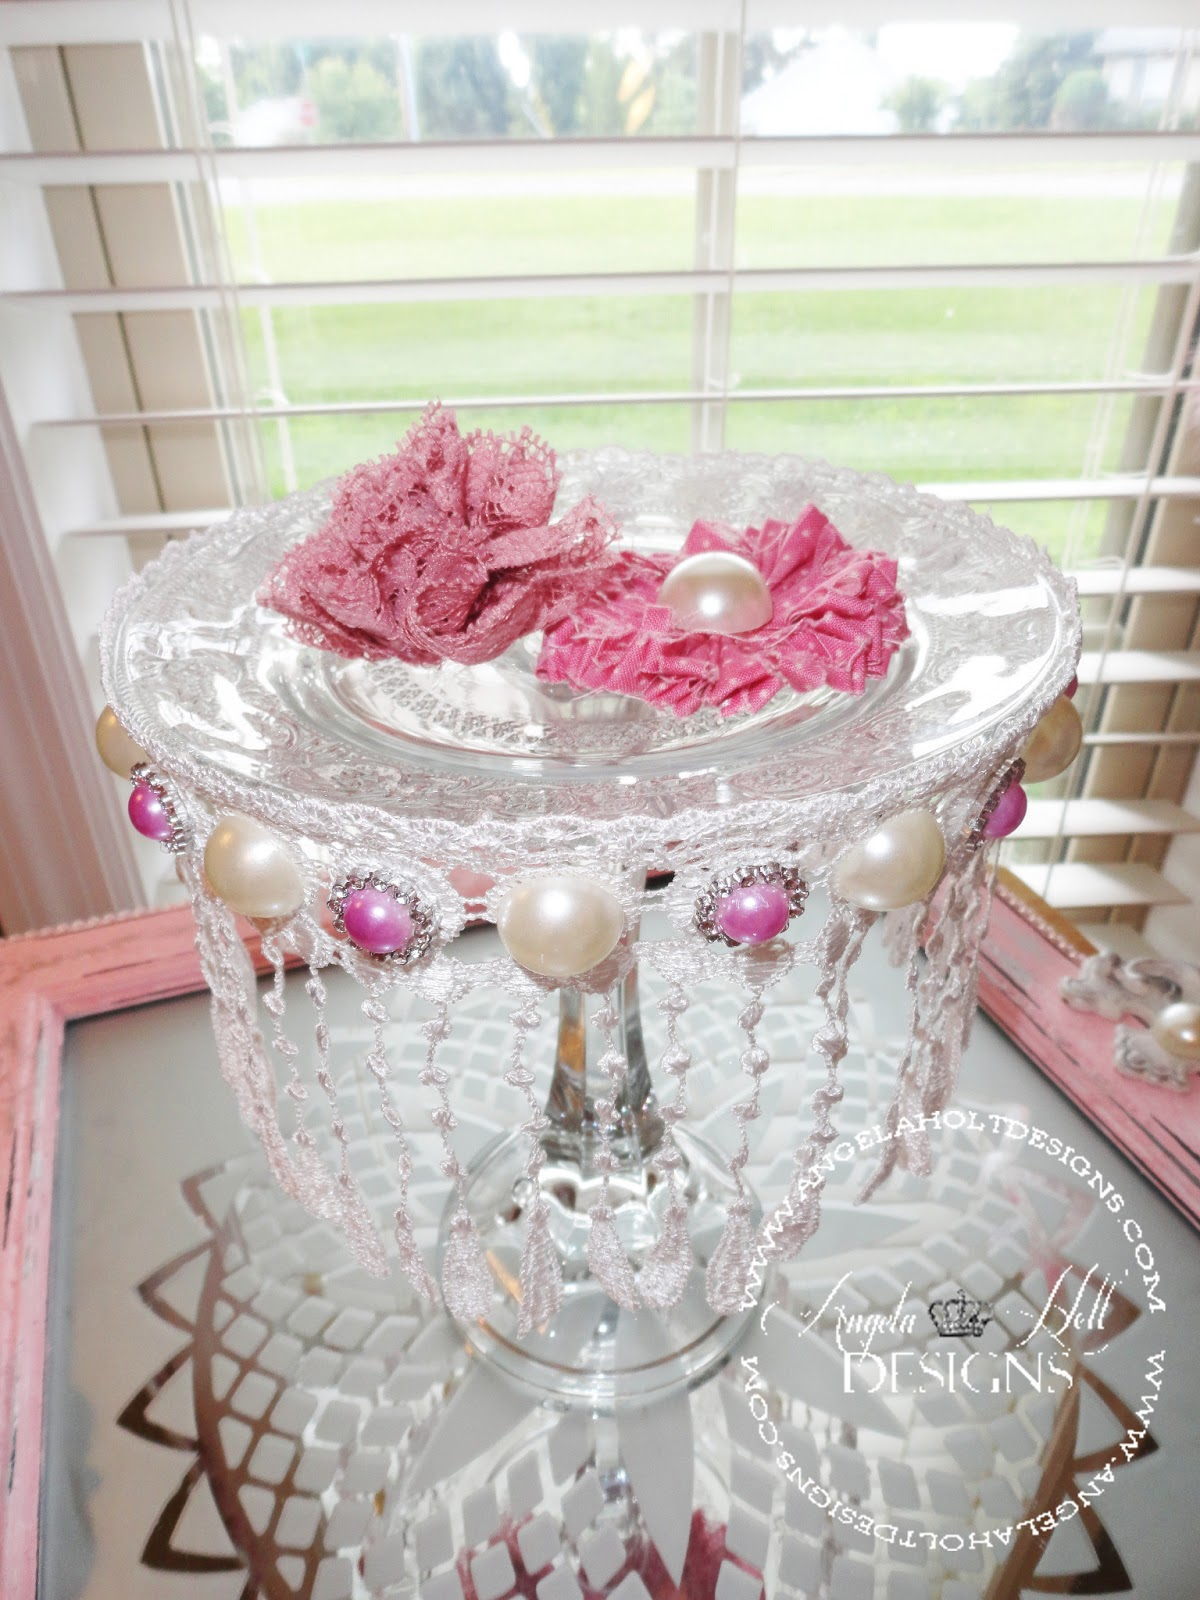 Angela Holt Designs: Simple Shabby Chic Style Project ...